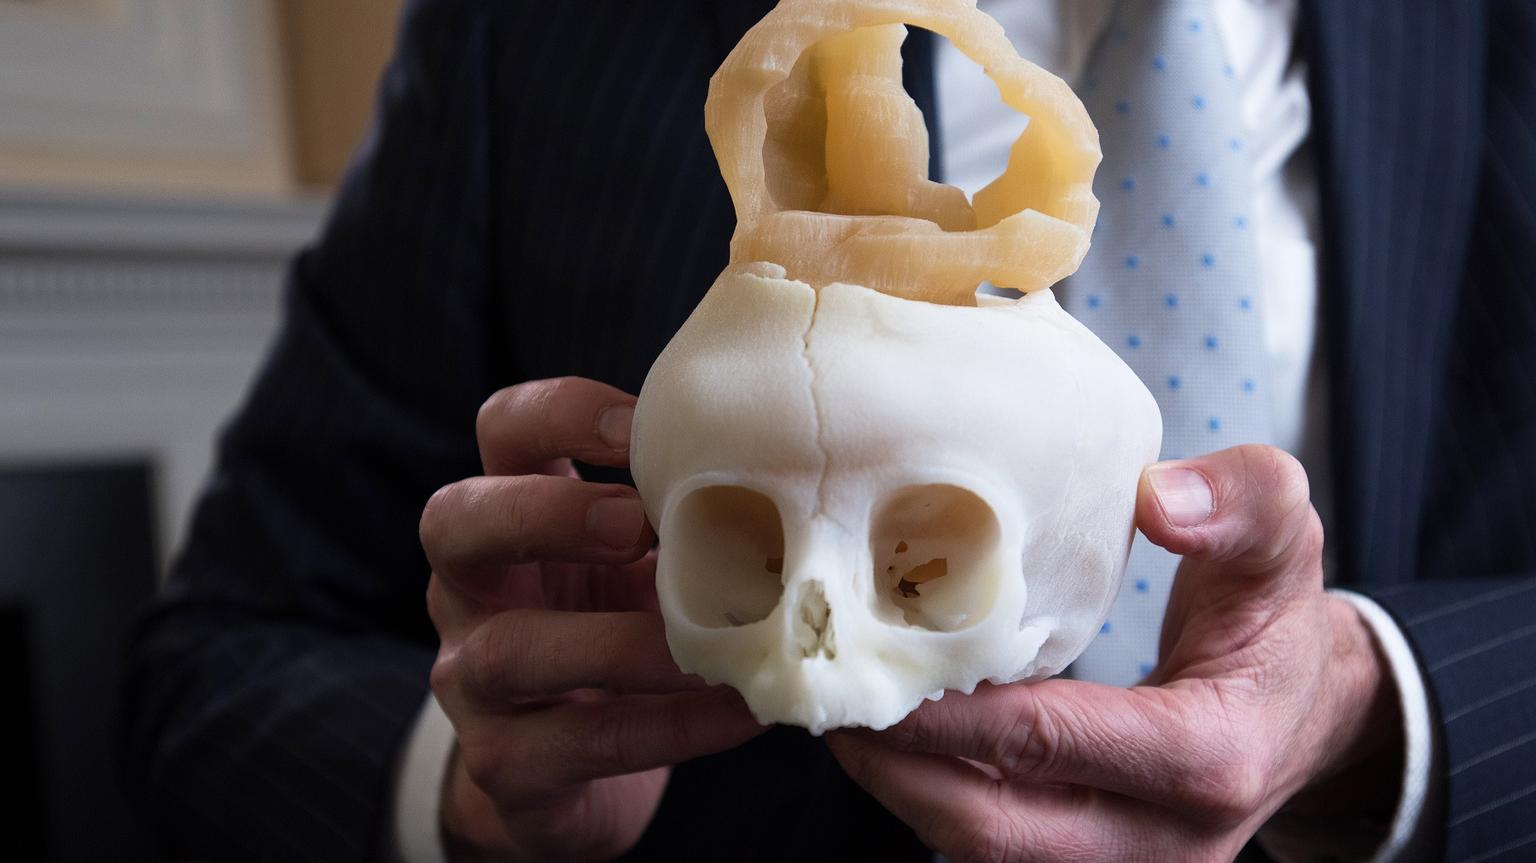 3D Printing saving lives